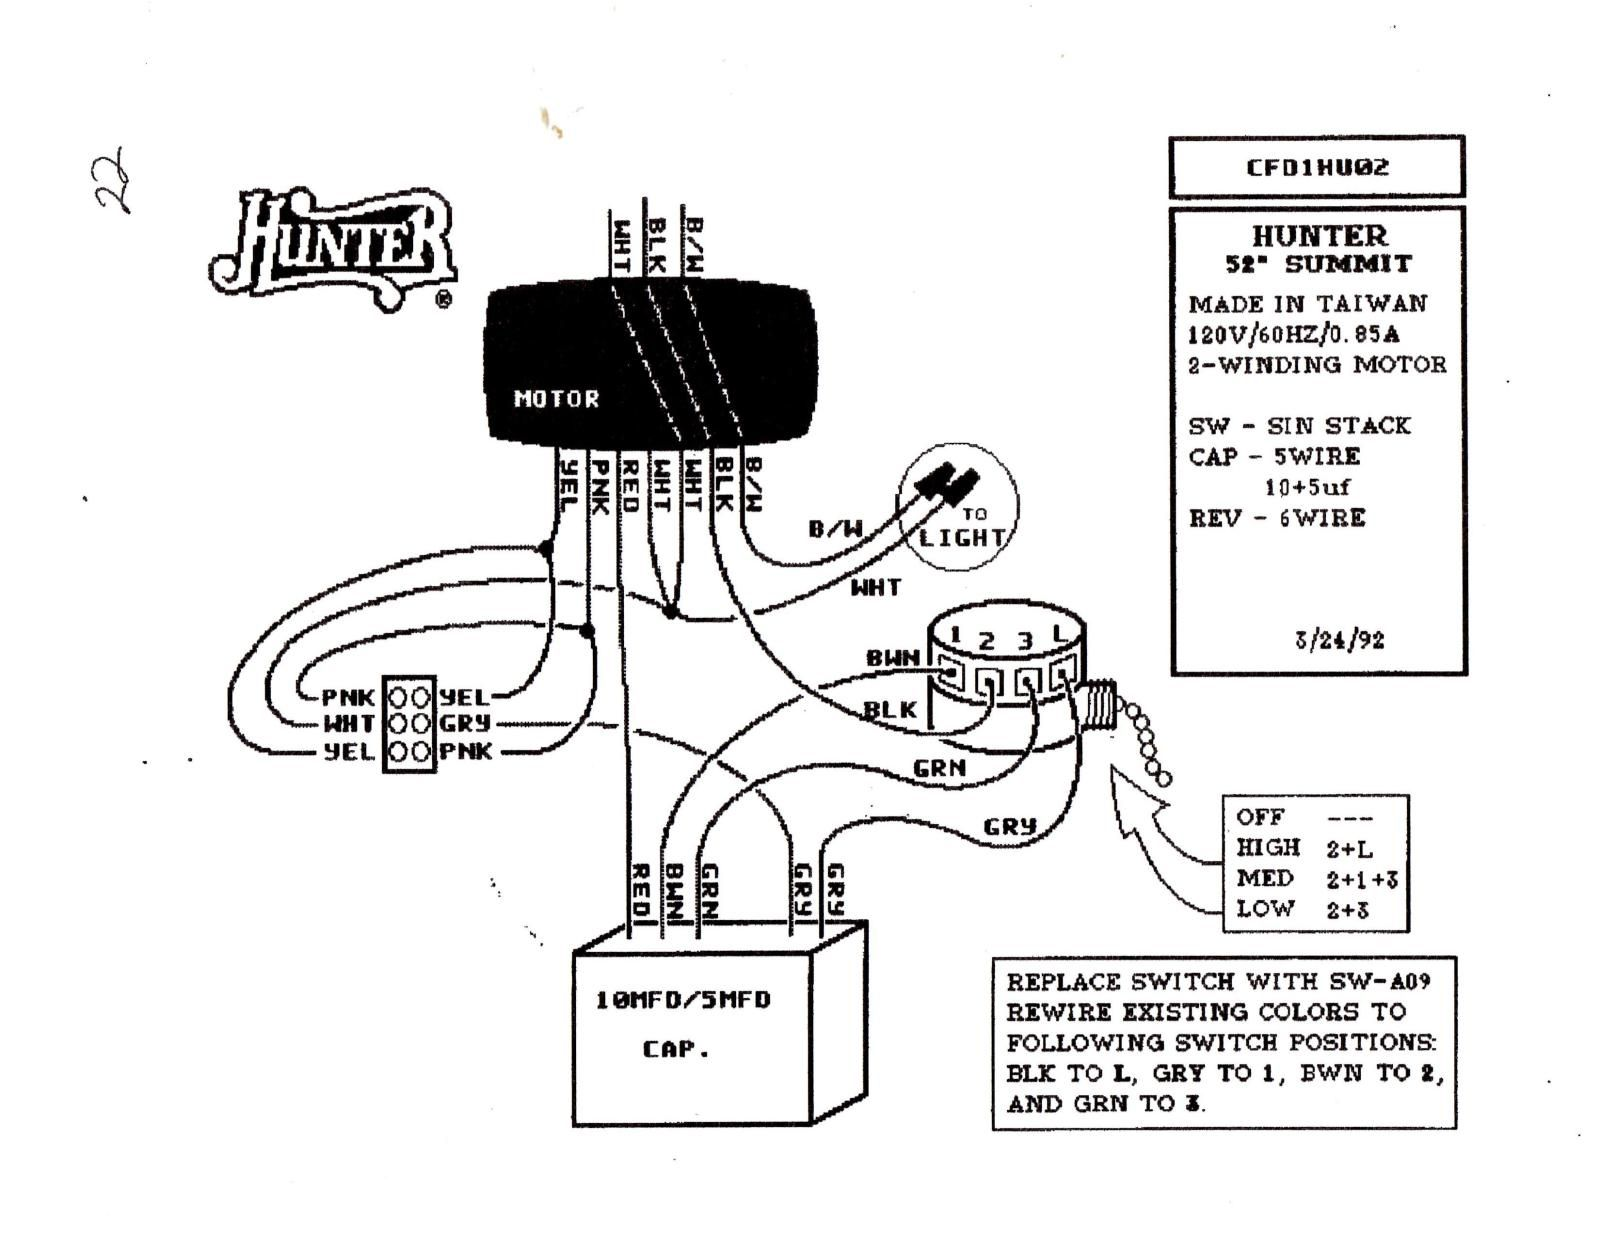 Ceiling Fan Wiring Diagram Switch 2002 Ford Expedition Engine Hunter Speed Pinterest